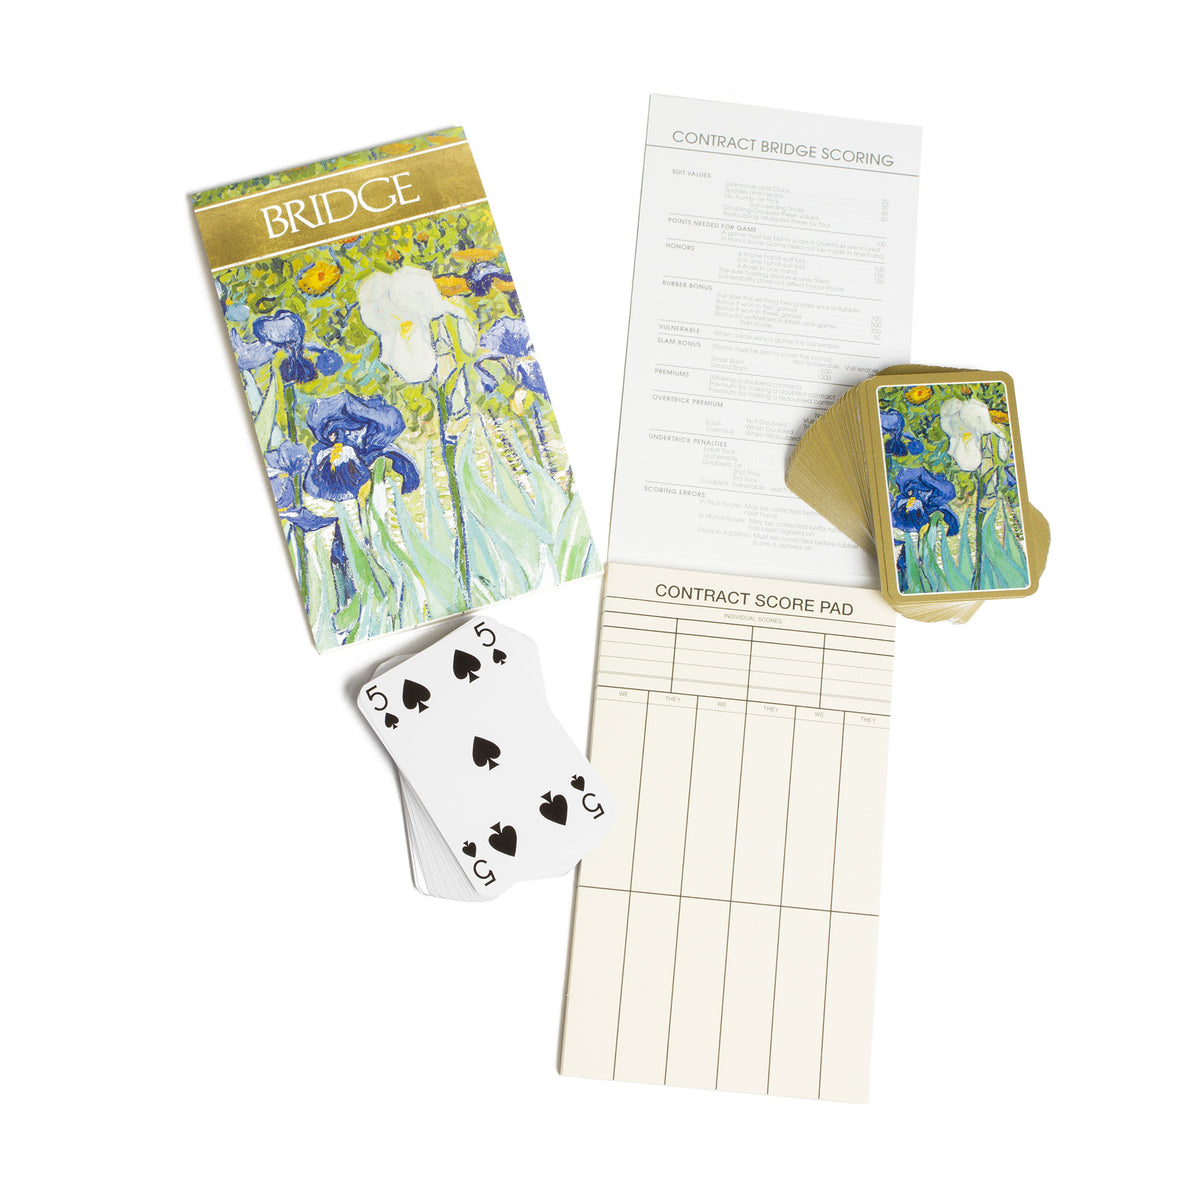 Van Gogh Irises - Bridge Gift Set- Van Gogh playing cards and score cards | Getty Store